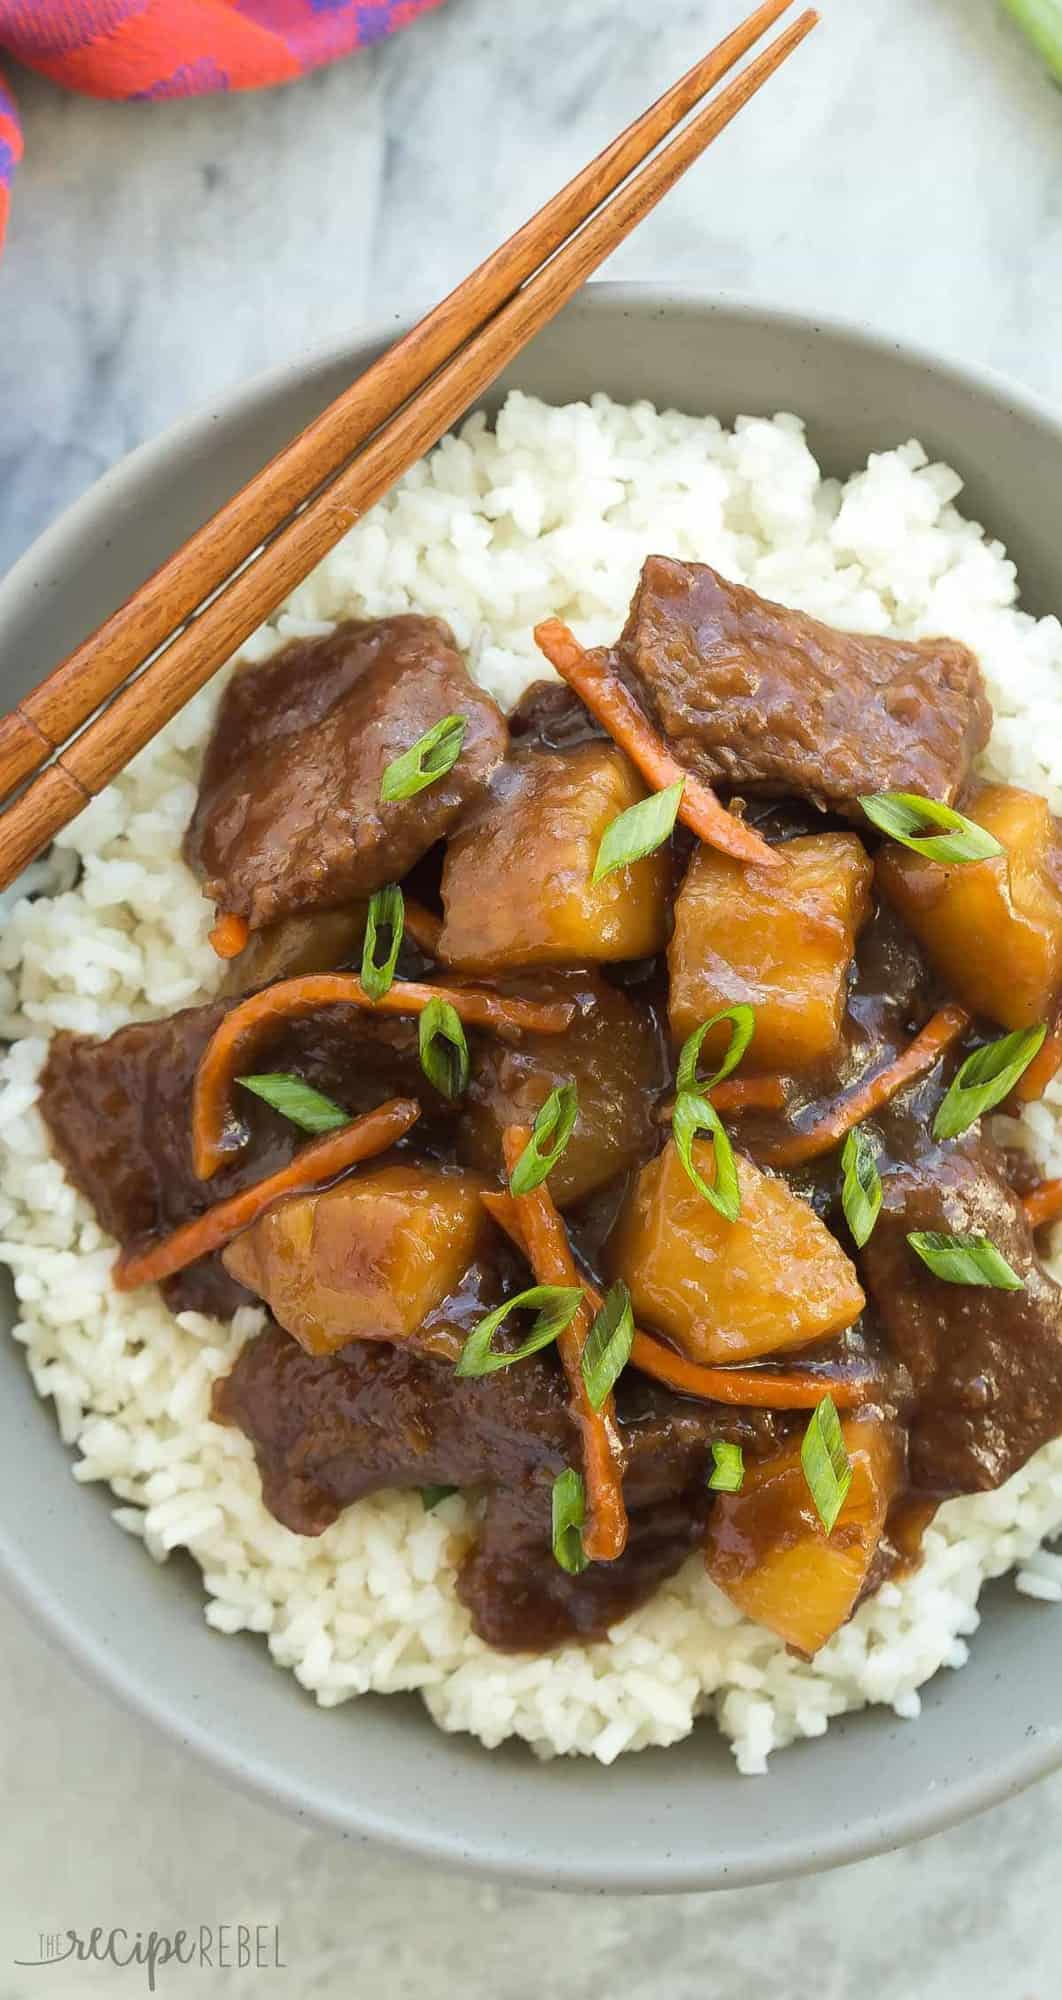 This Slow Cooker Mongolian Beef is sweet, sticky and a little spicy and loaded with pineapple! It's your new favorite Asian takeout dish made at home in the crockpot!